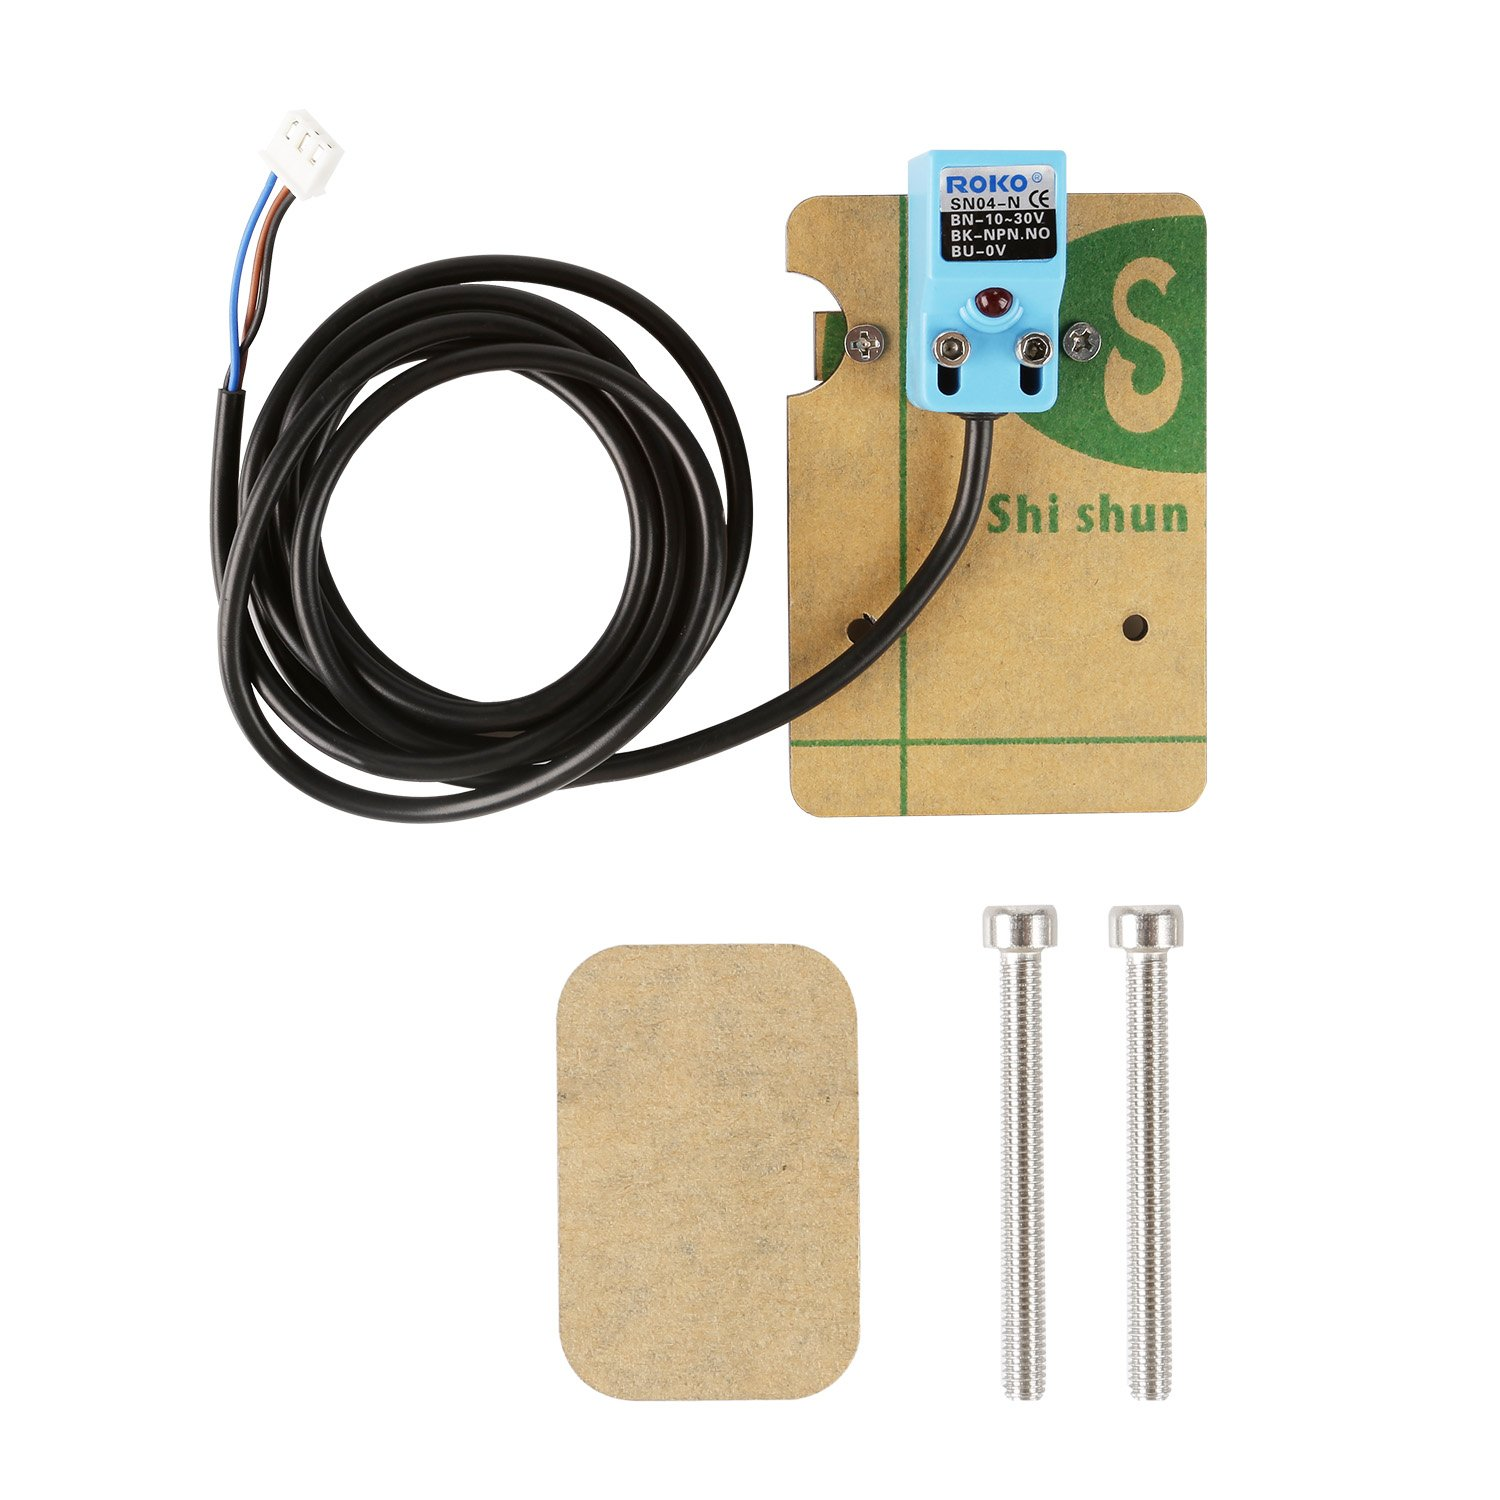 SAINSMART Auto Leveling Position Sensor for Anet A8 DIY i3 3D Printer RepRap Includes Mounting Plate and Screws